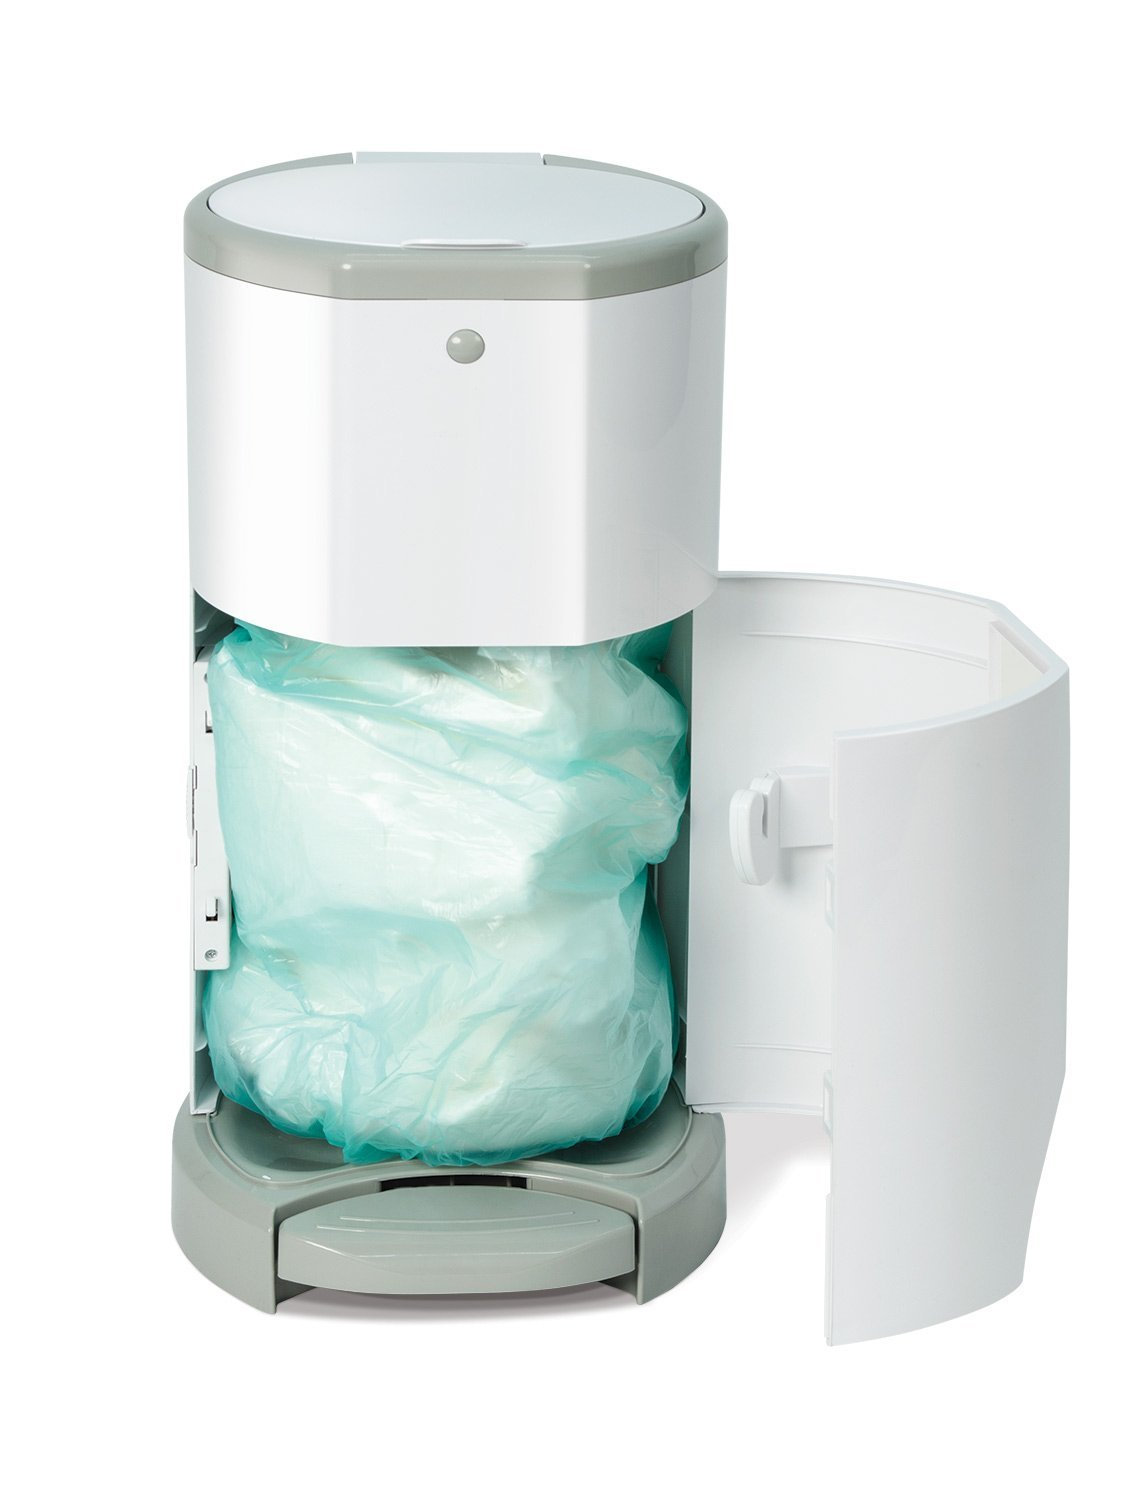 Adult Hygienic Incontinence Disposal Diaper System Large - Refill Bags by North American Helath + Wellness